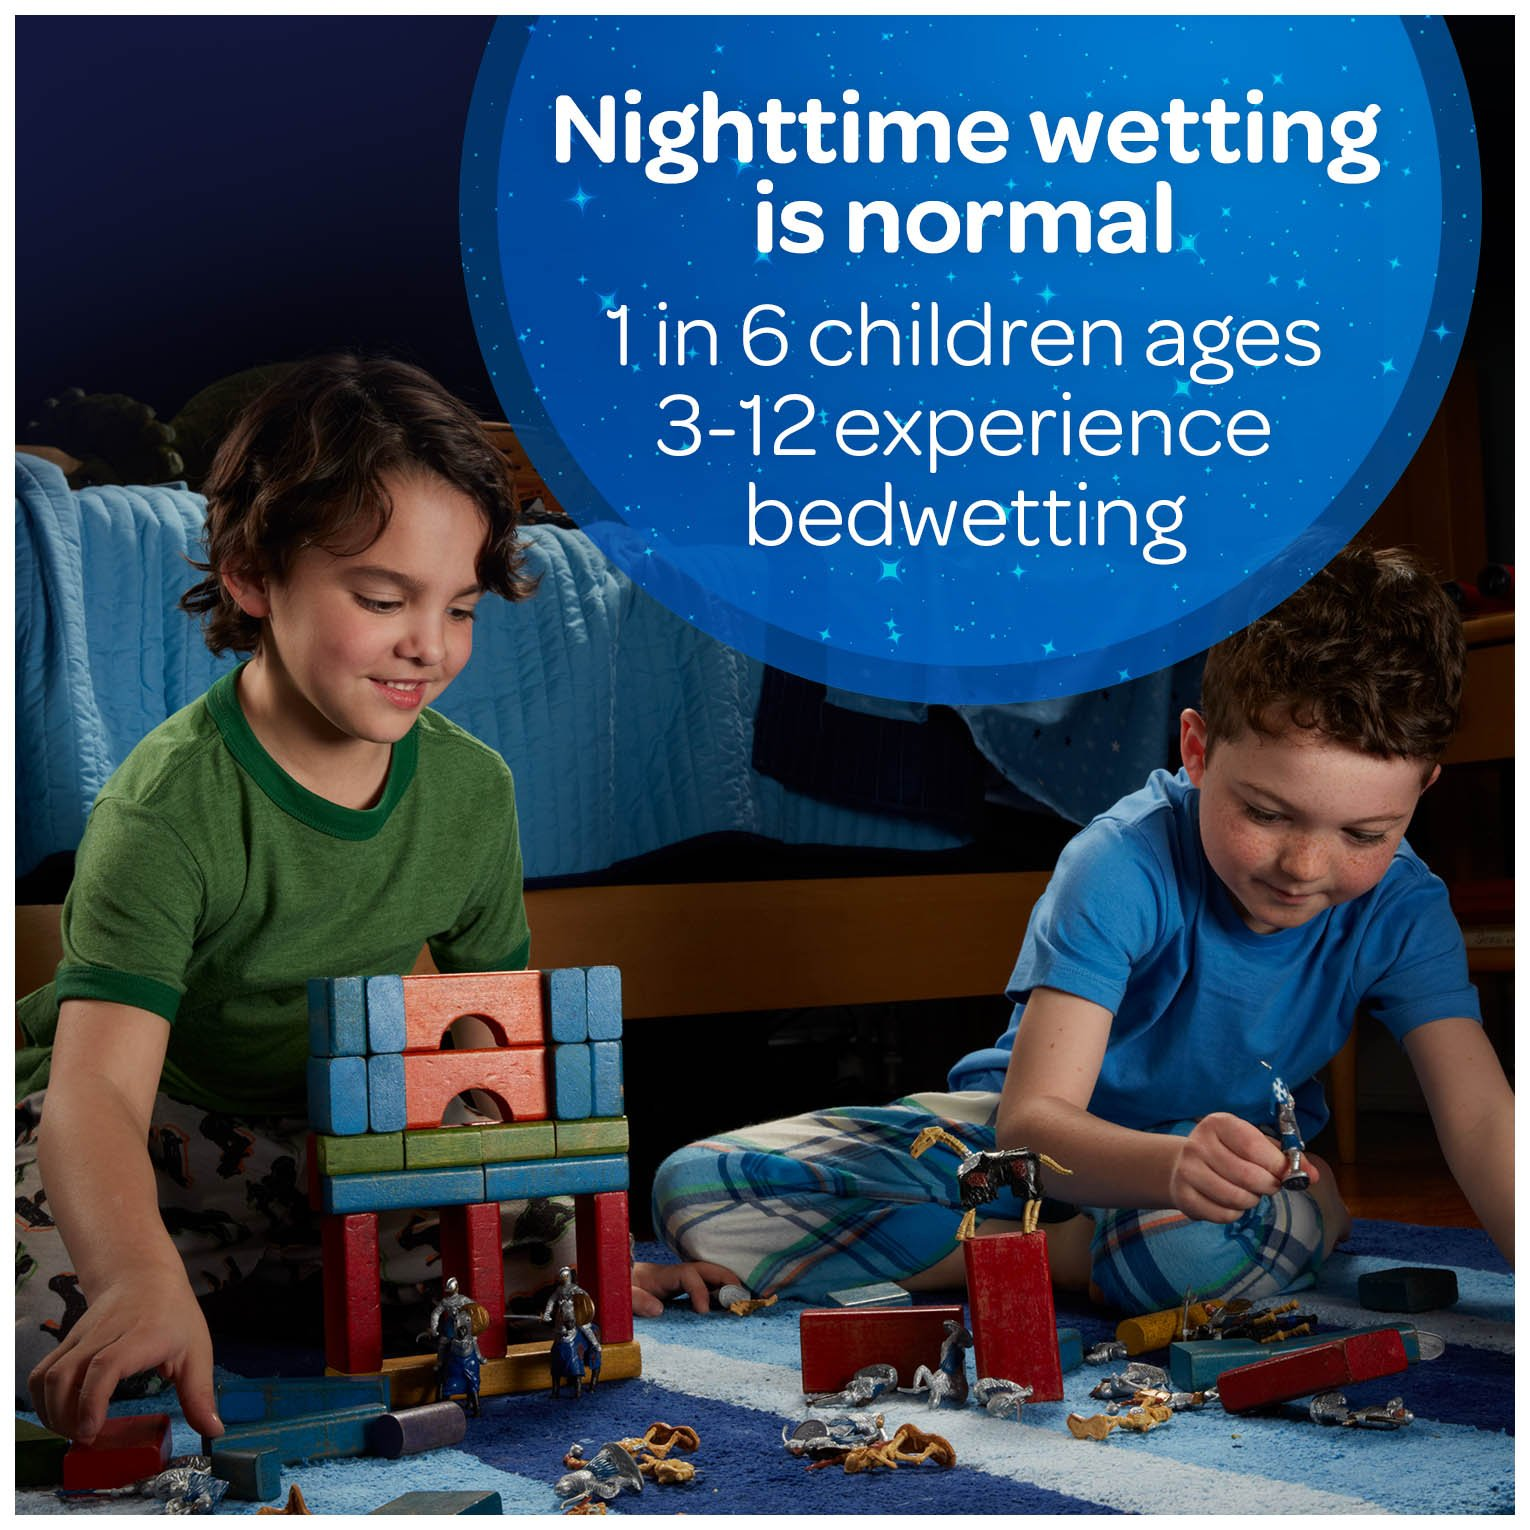 GoodNites Bedtime Bedwetting Underwear for Boys, S-M (38-65 lb), 44 Ct. (Packaging May Vary) by GoodNites (Image #8)